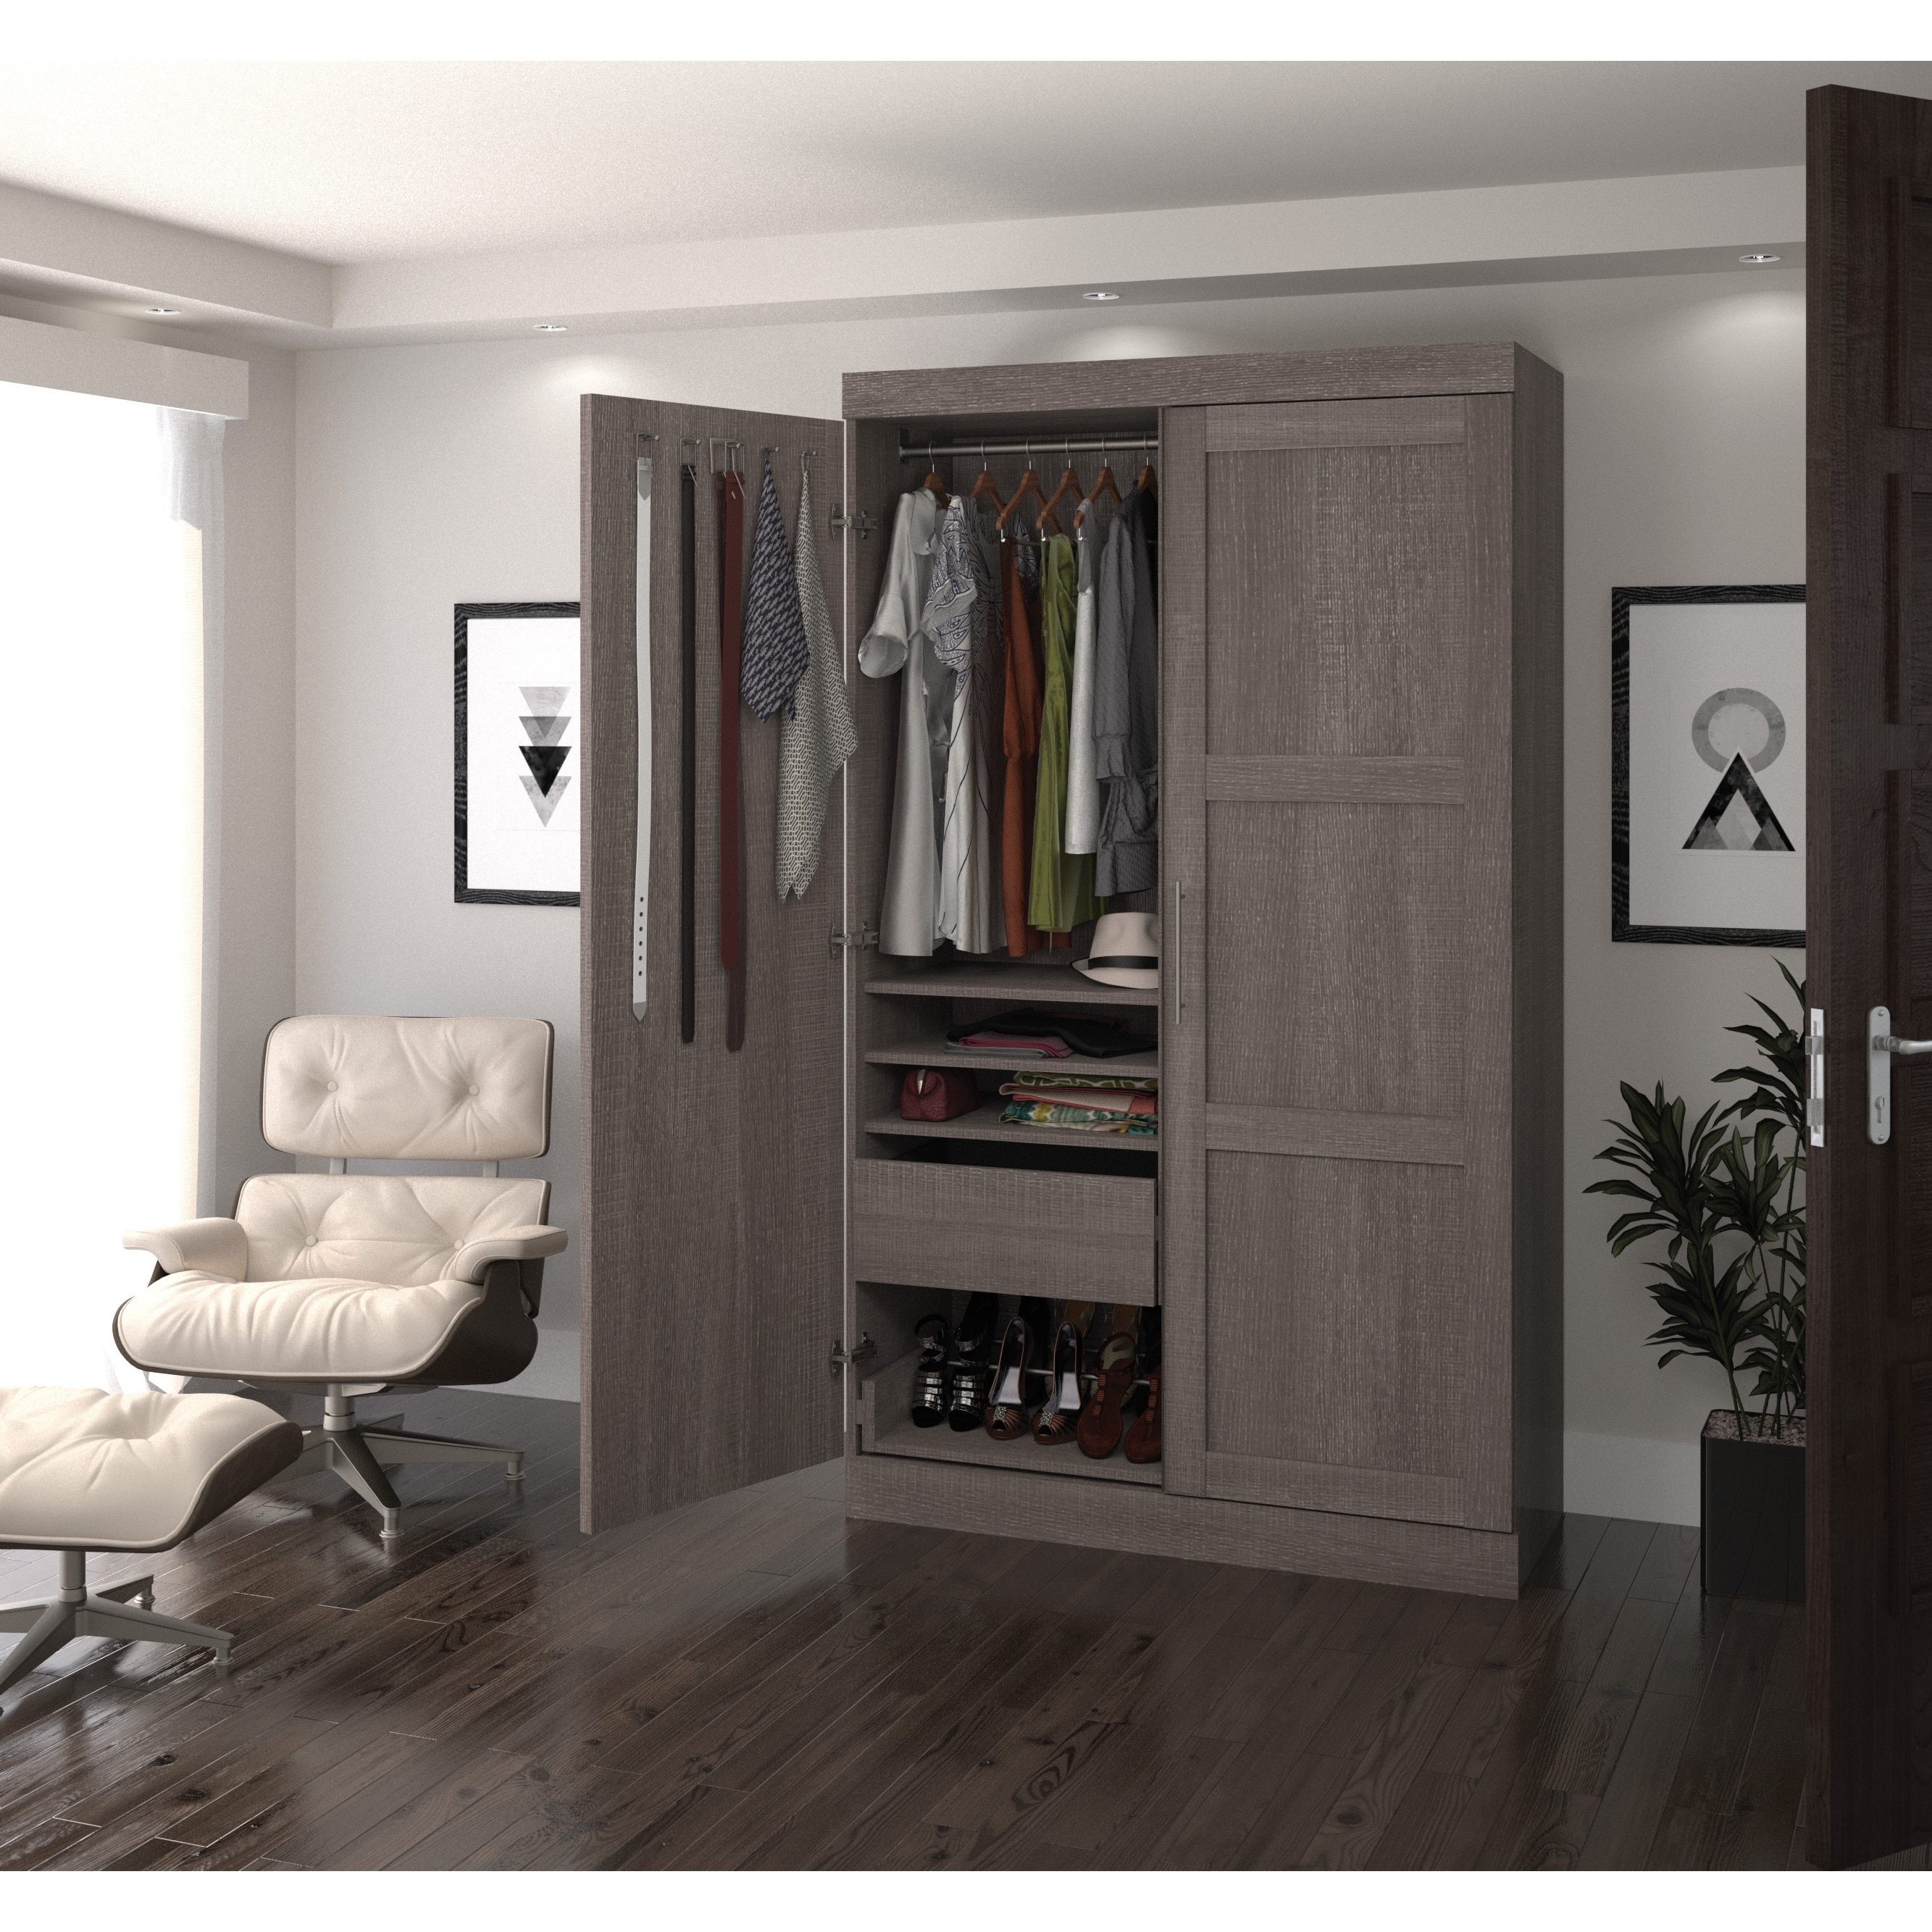 garden hopedale today drawer shipping overstock shore storage armoire home product free south living livings room